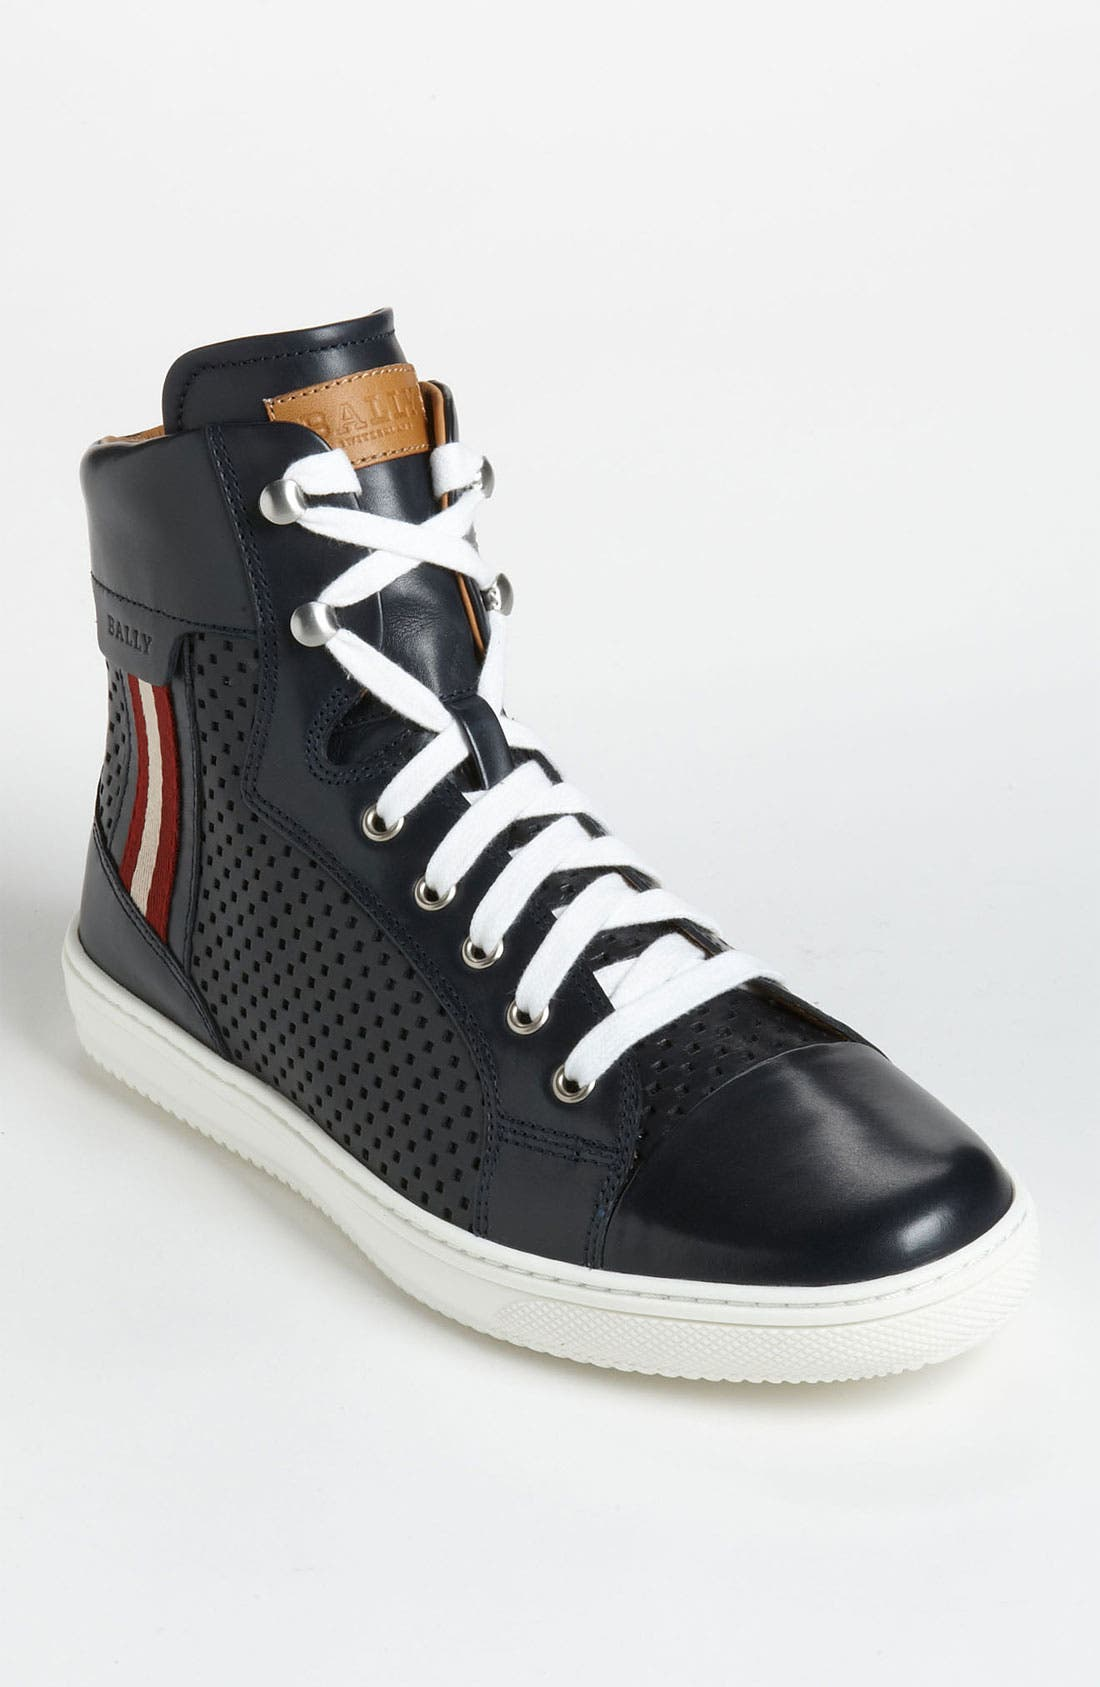 Alternate Image 1 Selected - Bally 'Olir' Sneaker